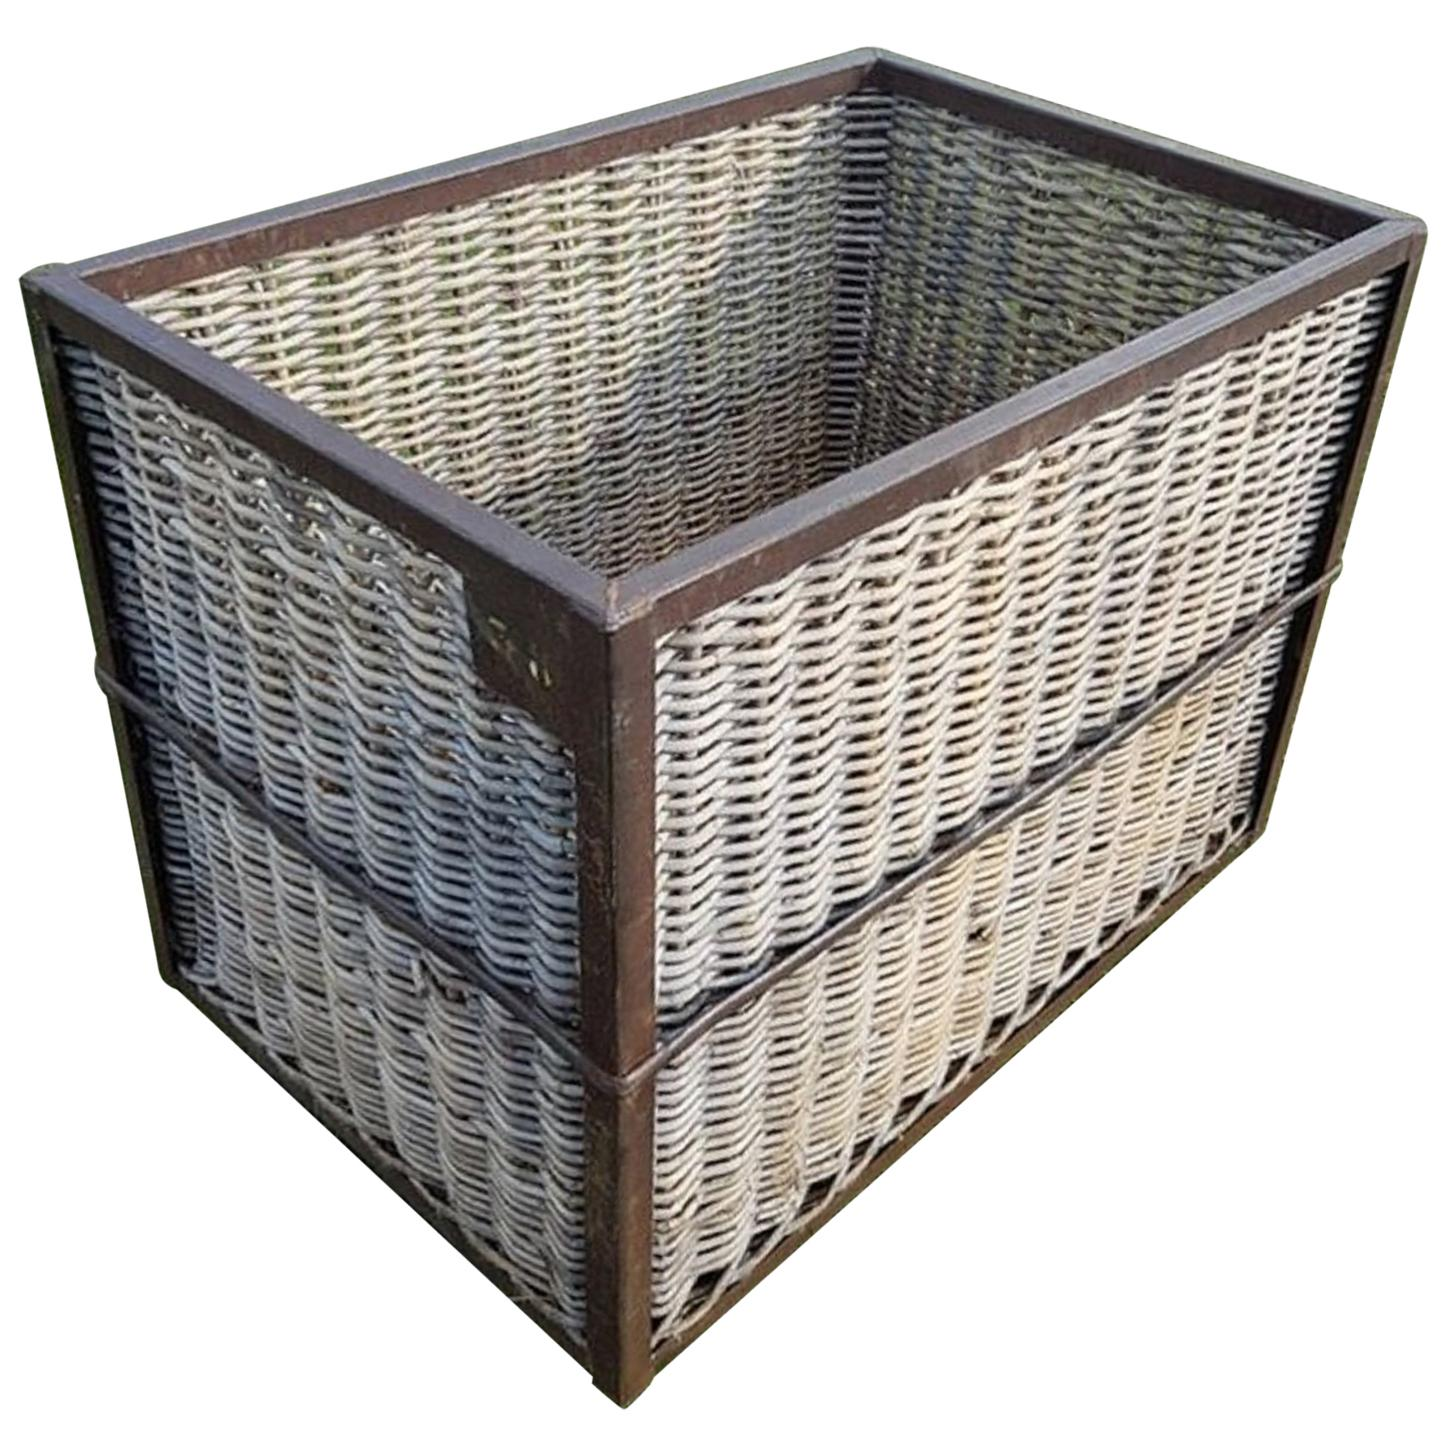 Metal Wash Bin Vintage Steel Frame Wicker Laundry Basket Bin On Wheels